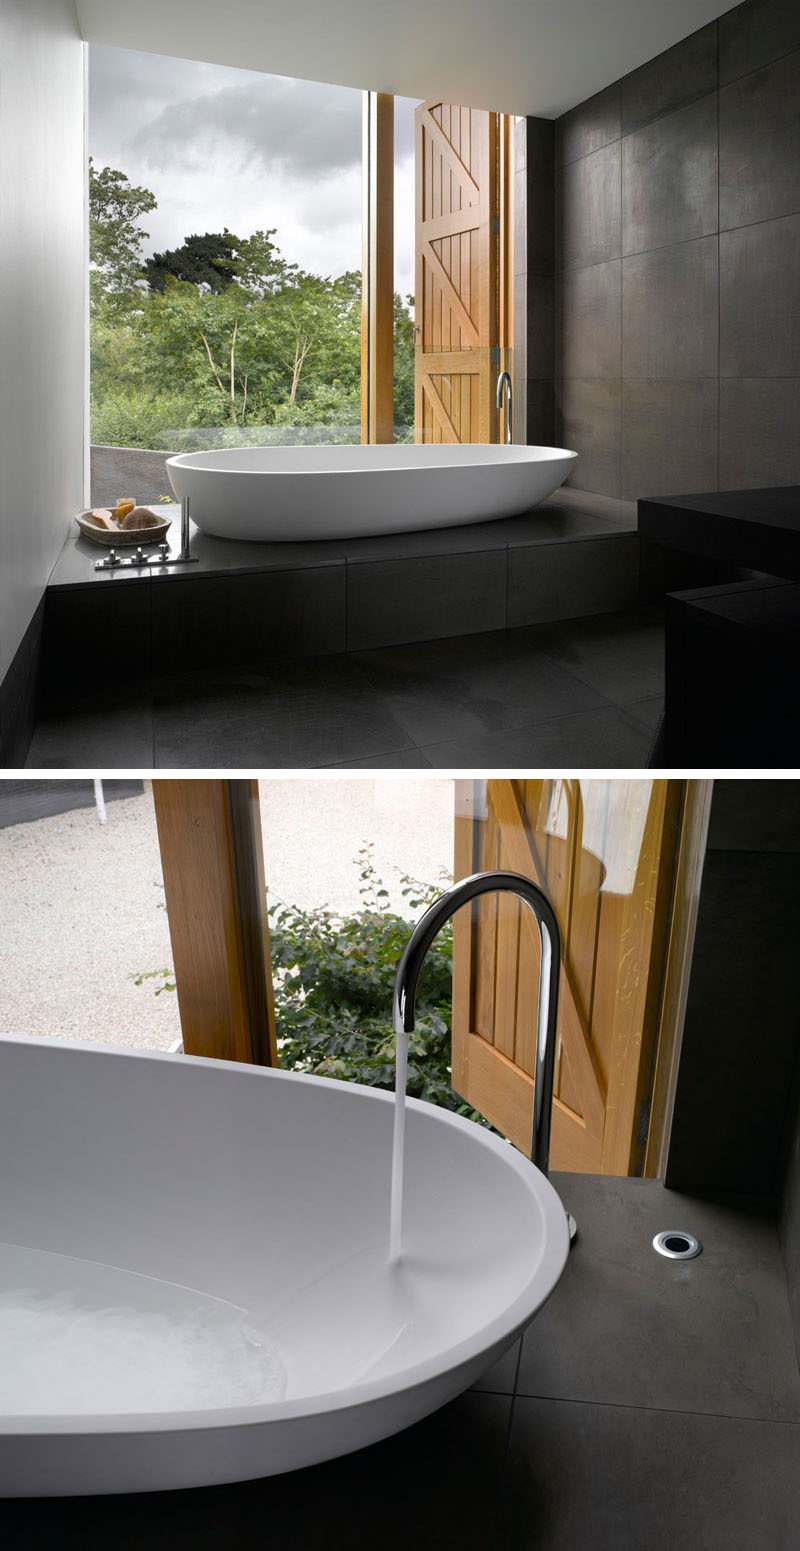 In this master bathroom, dark tiles have been paired with white walls and bathtub for a minimalist look, while the large windows provides views of the garden.